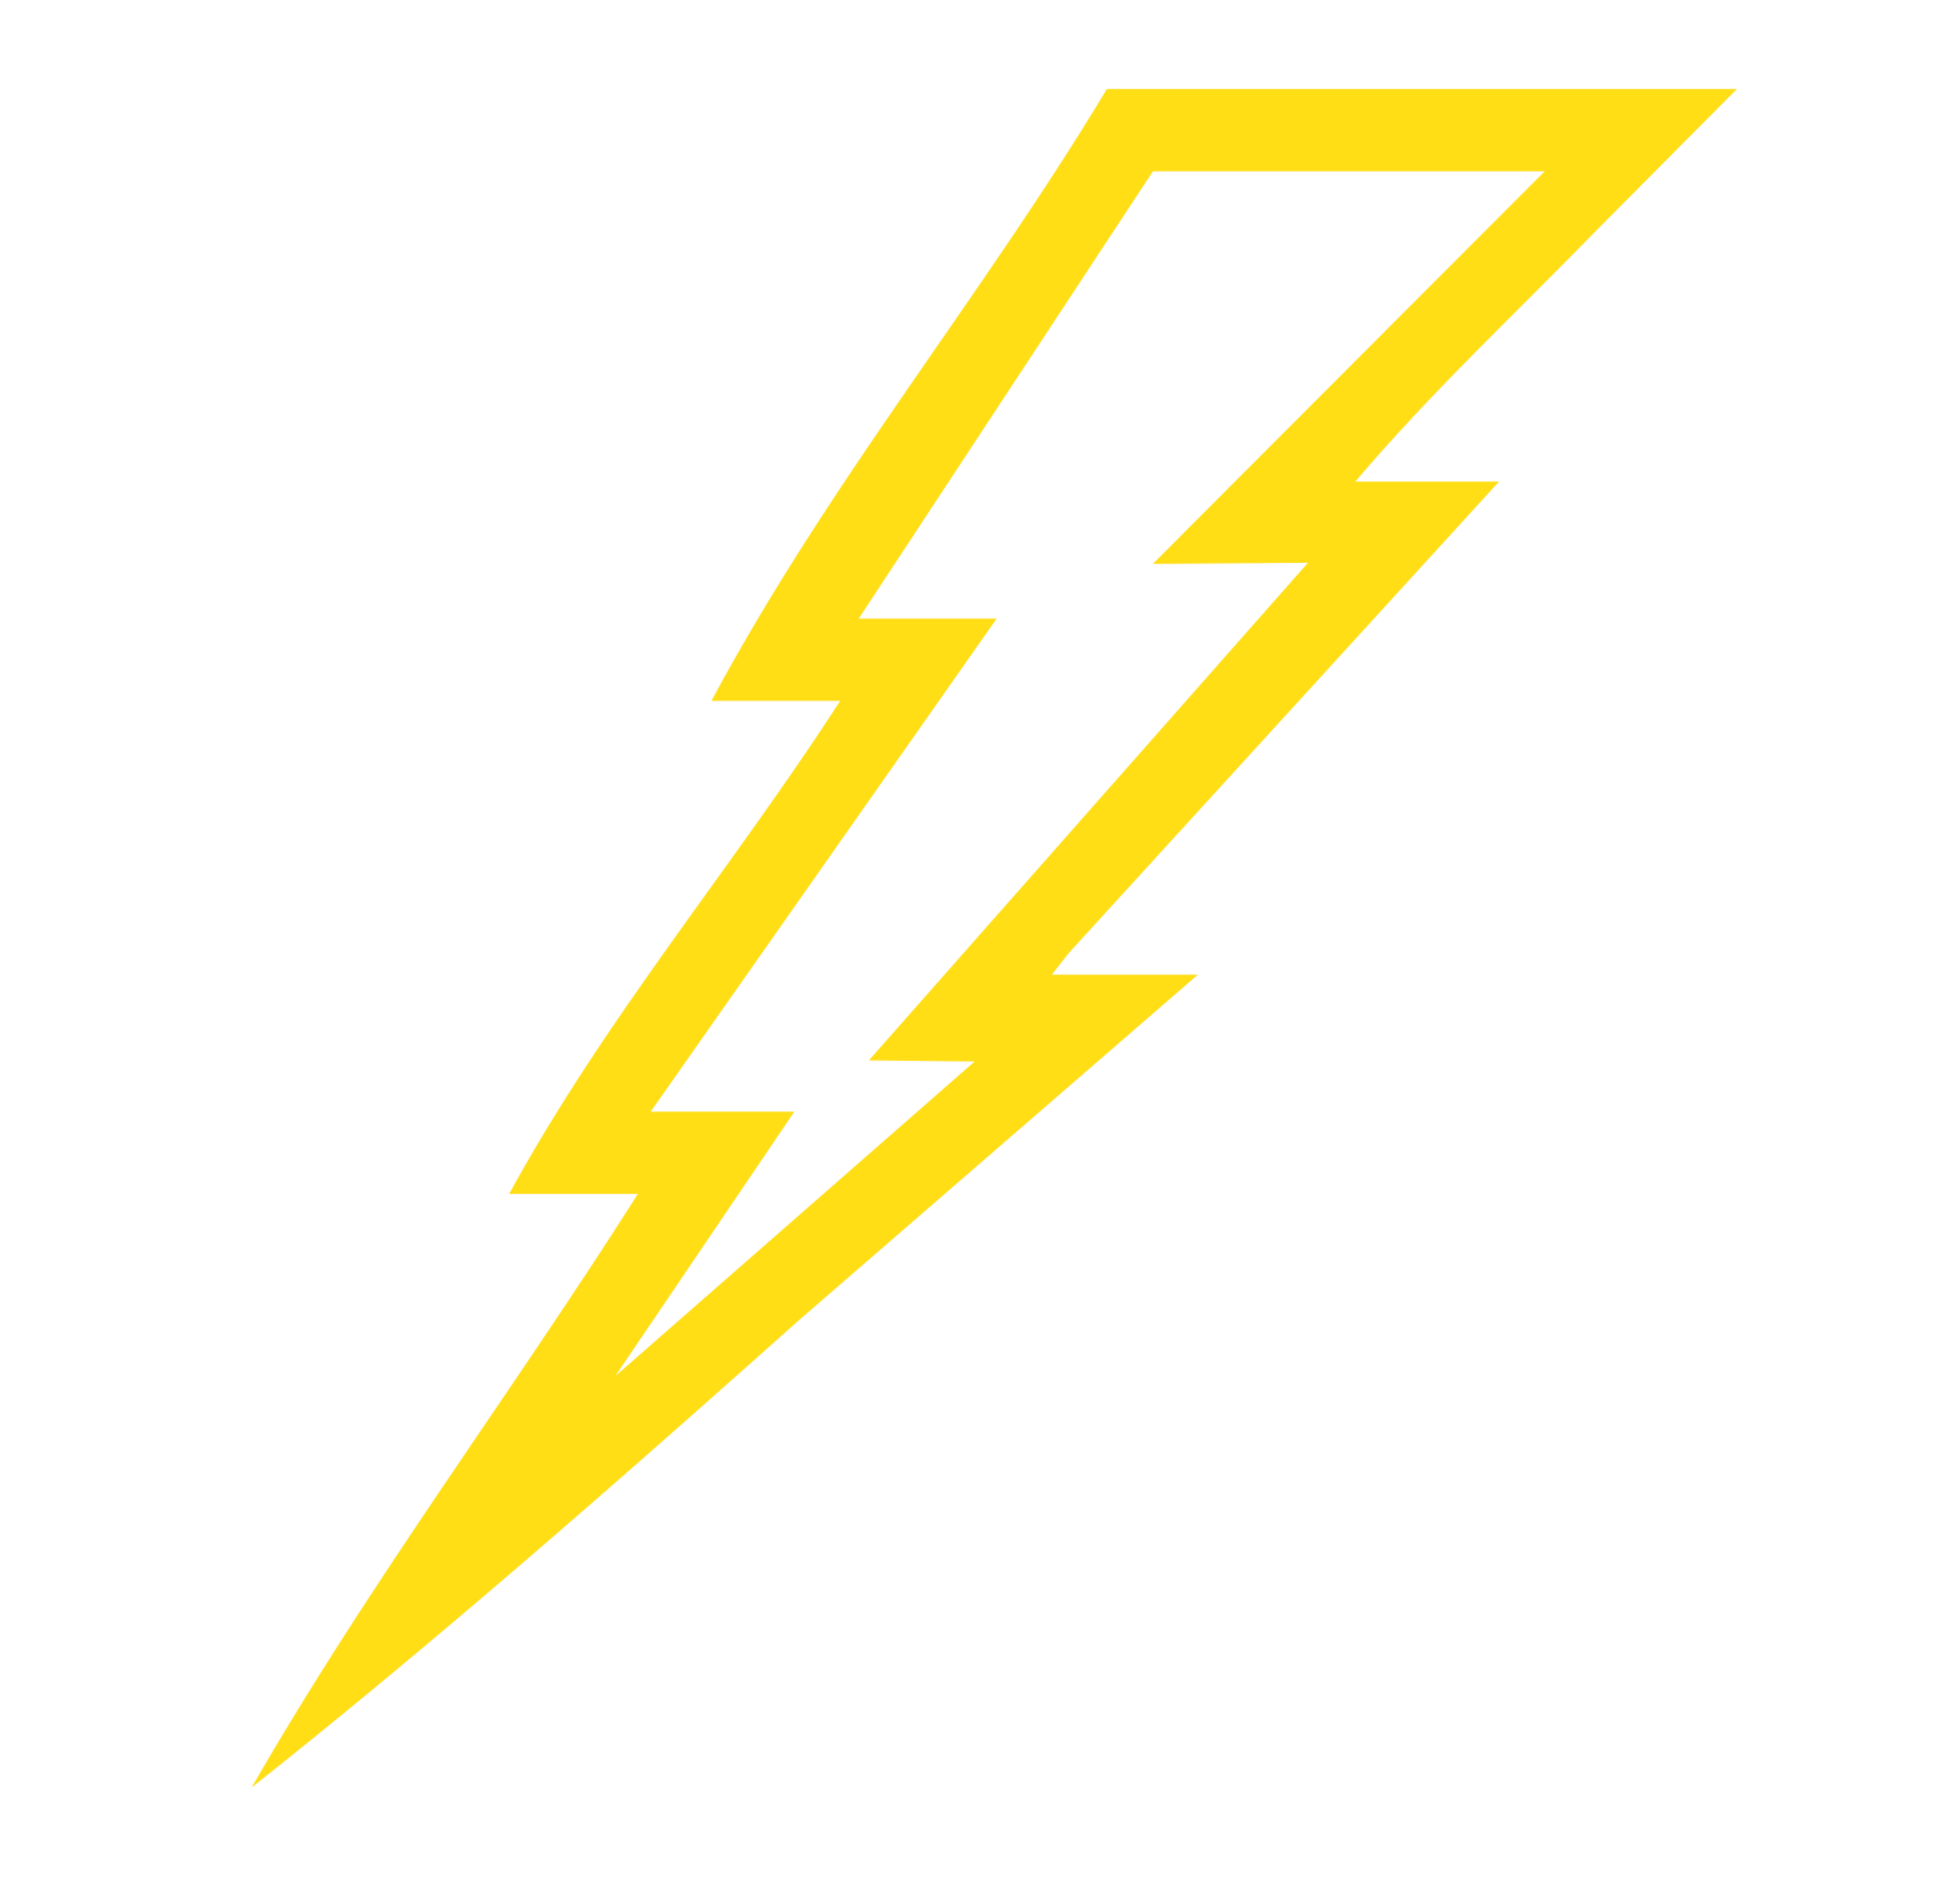 Lightning bolt clipart. Electricity zeus pencil and